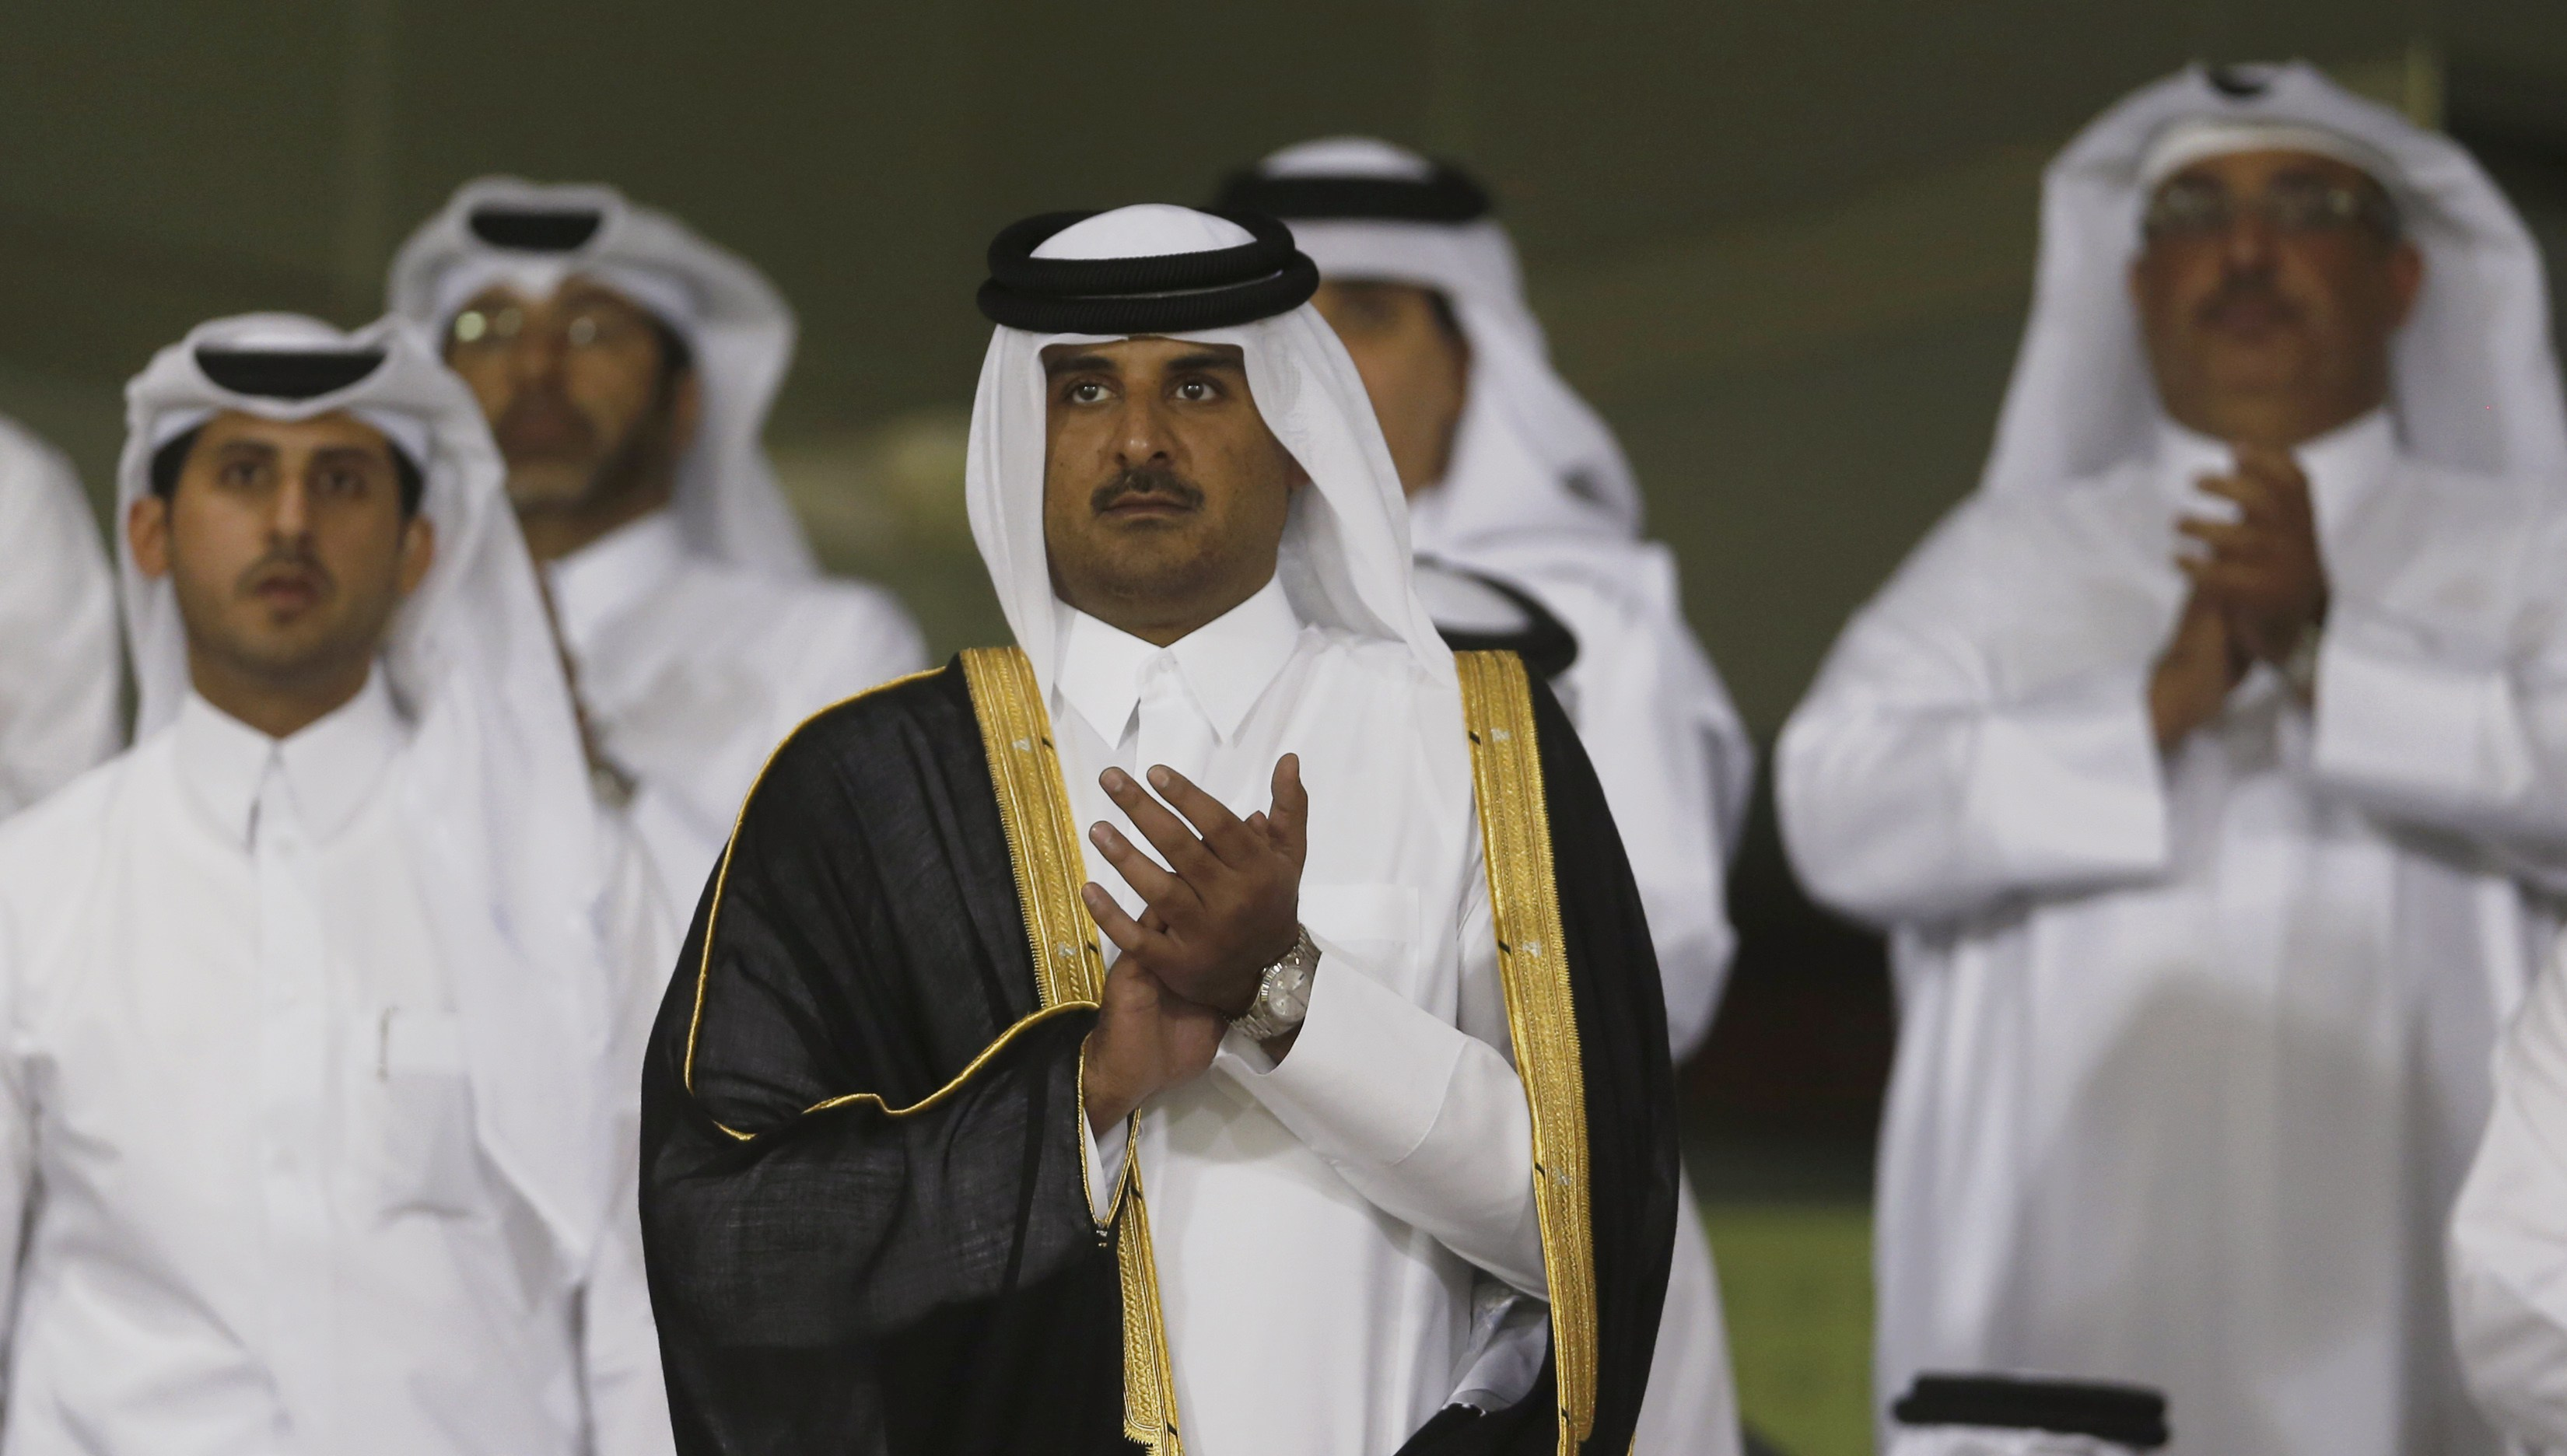 Image result for PHOTOS OF QATAR LEADERS